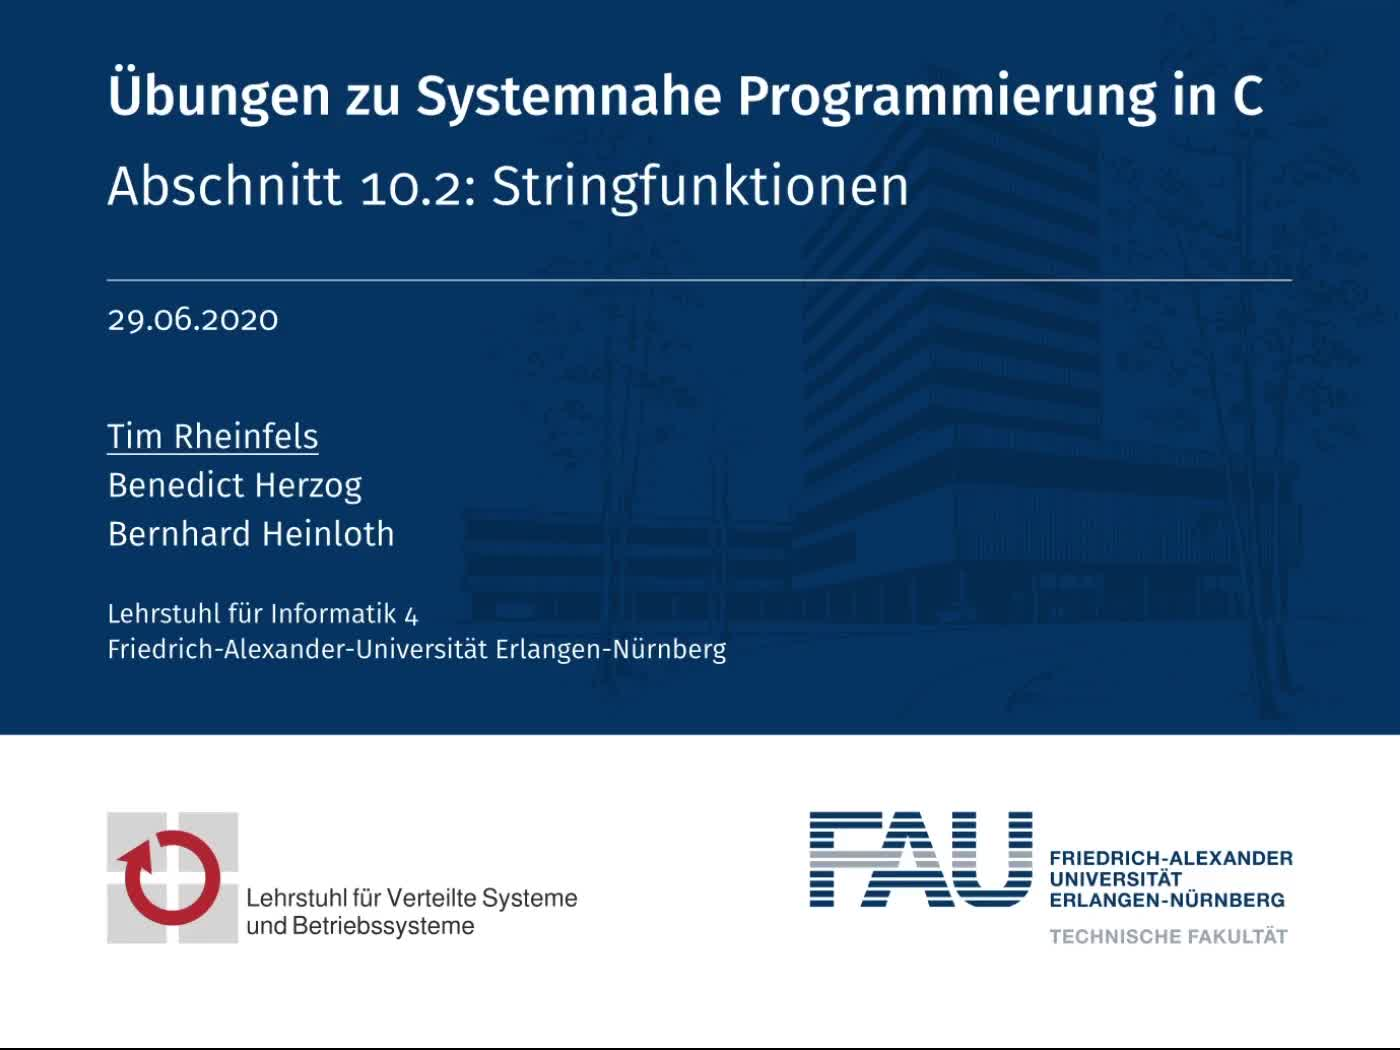 10.2: Stringfunktionen preview image